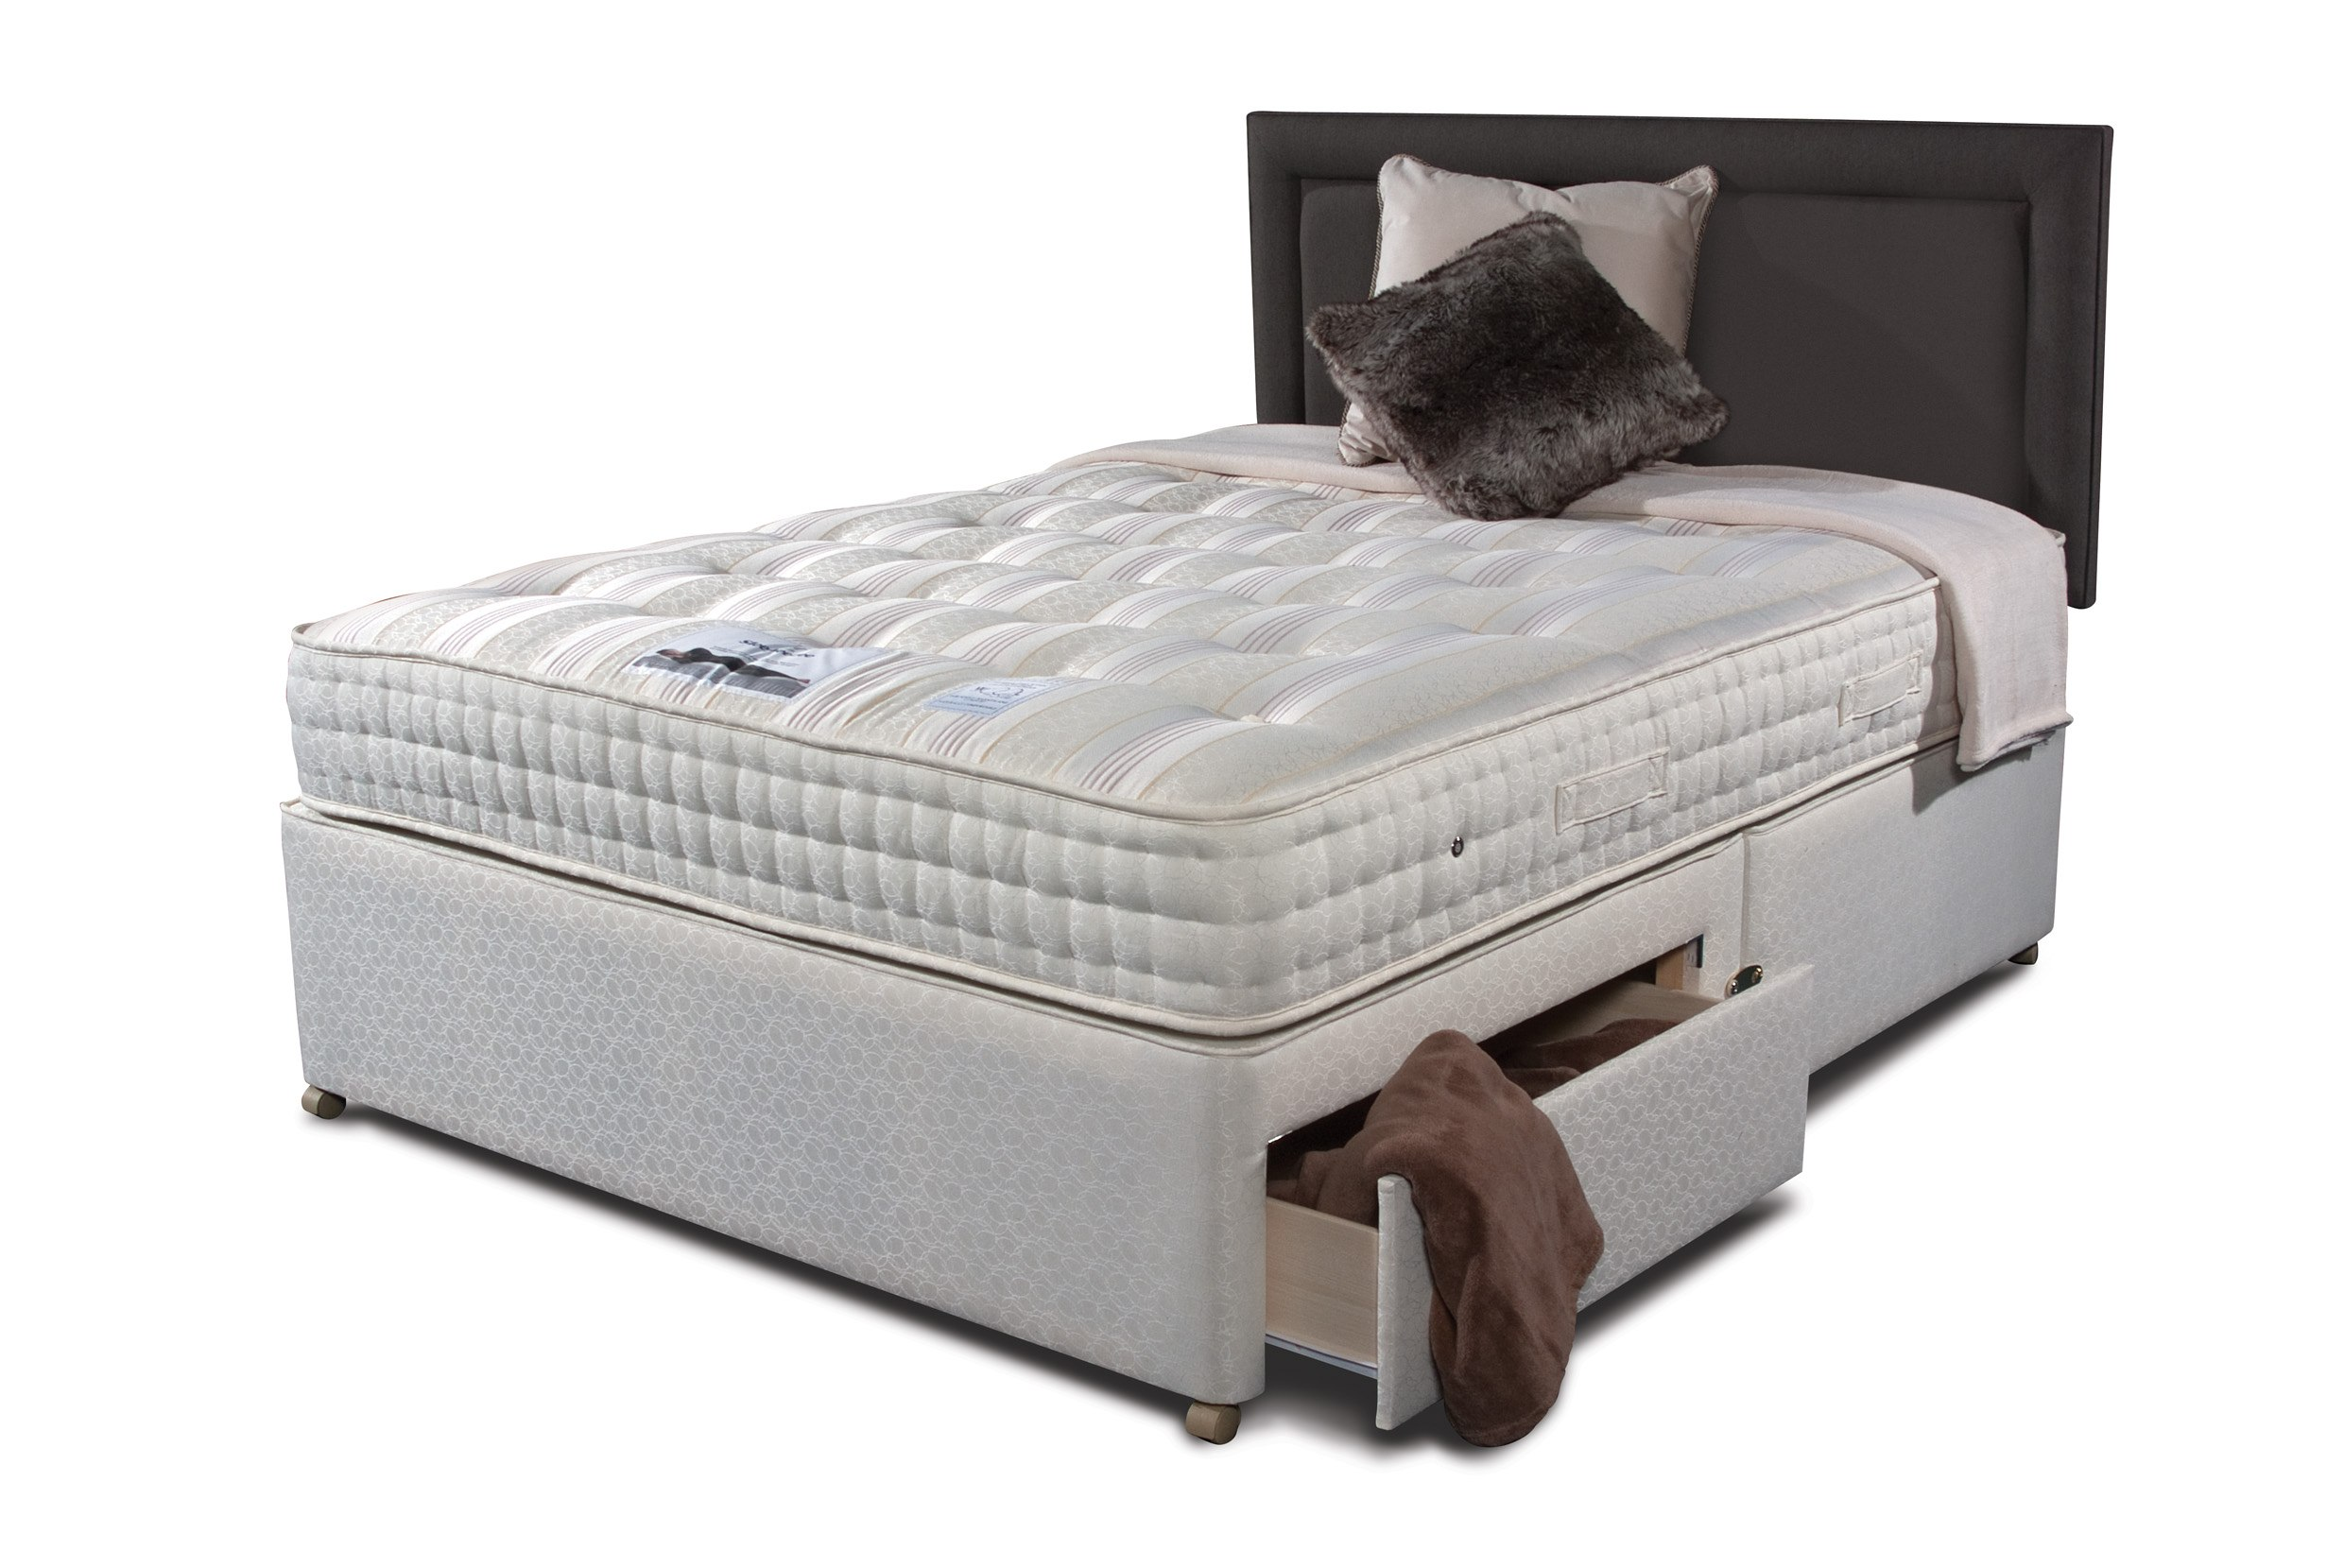 Sleepeezee new backcare luxury 1400 divan bed the world for Luxury divan beds